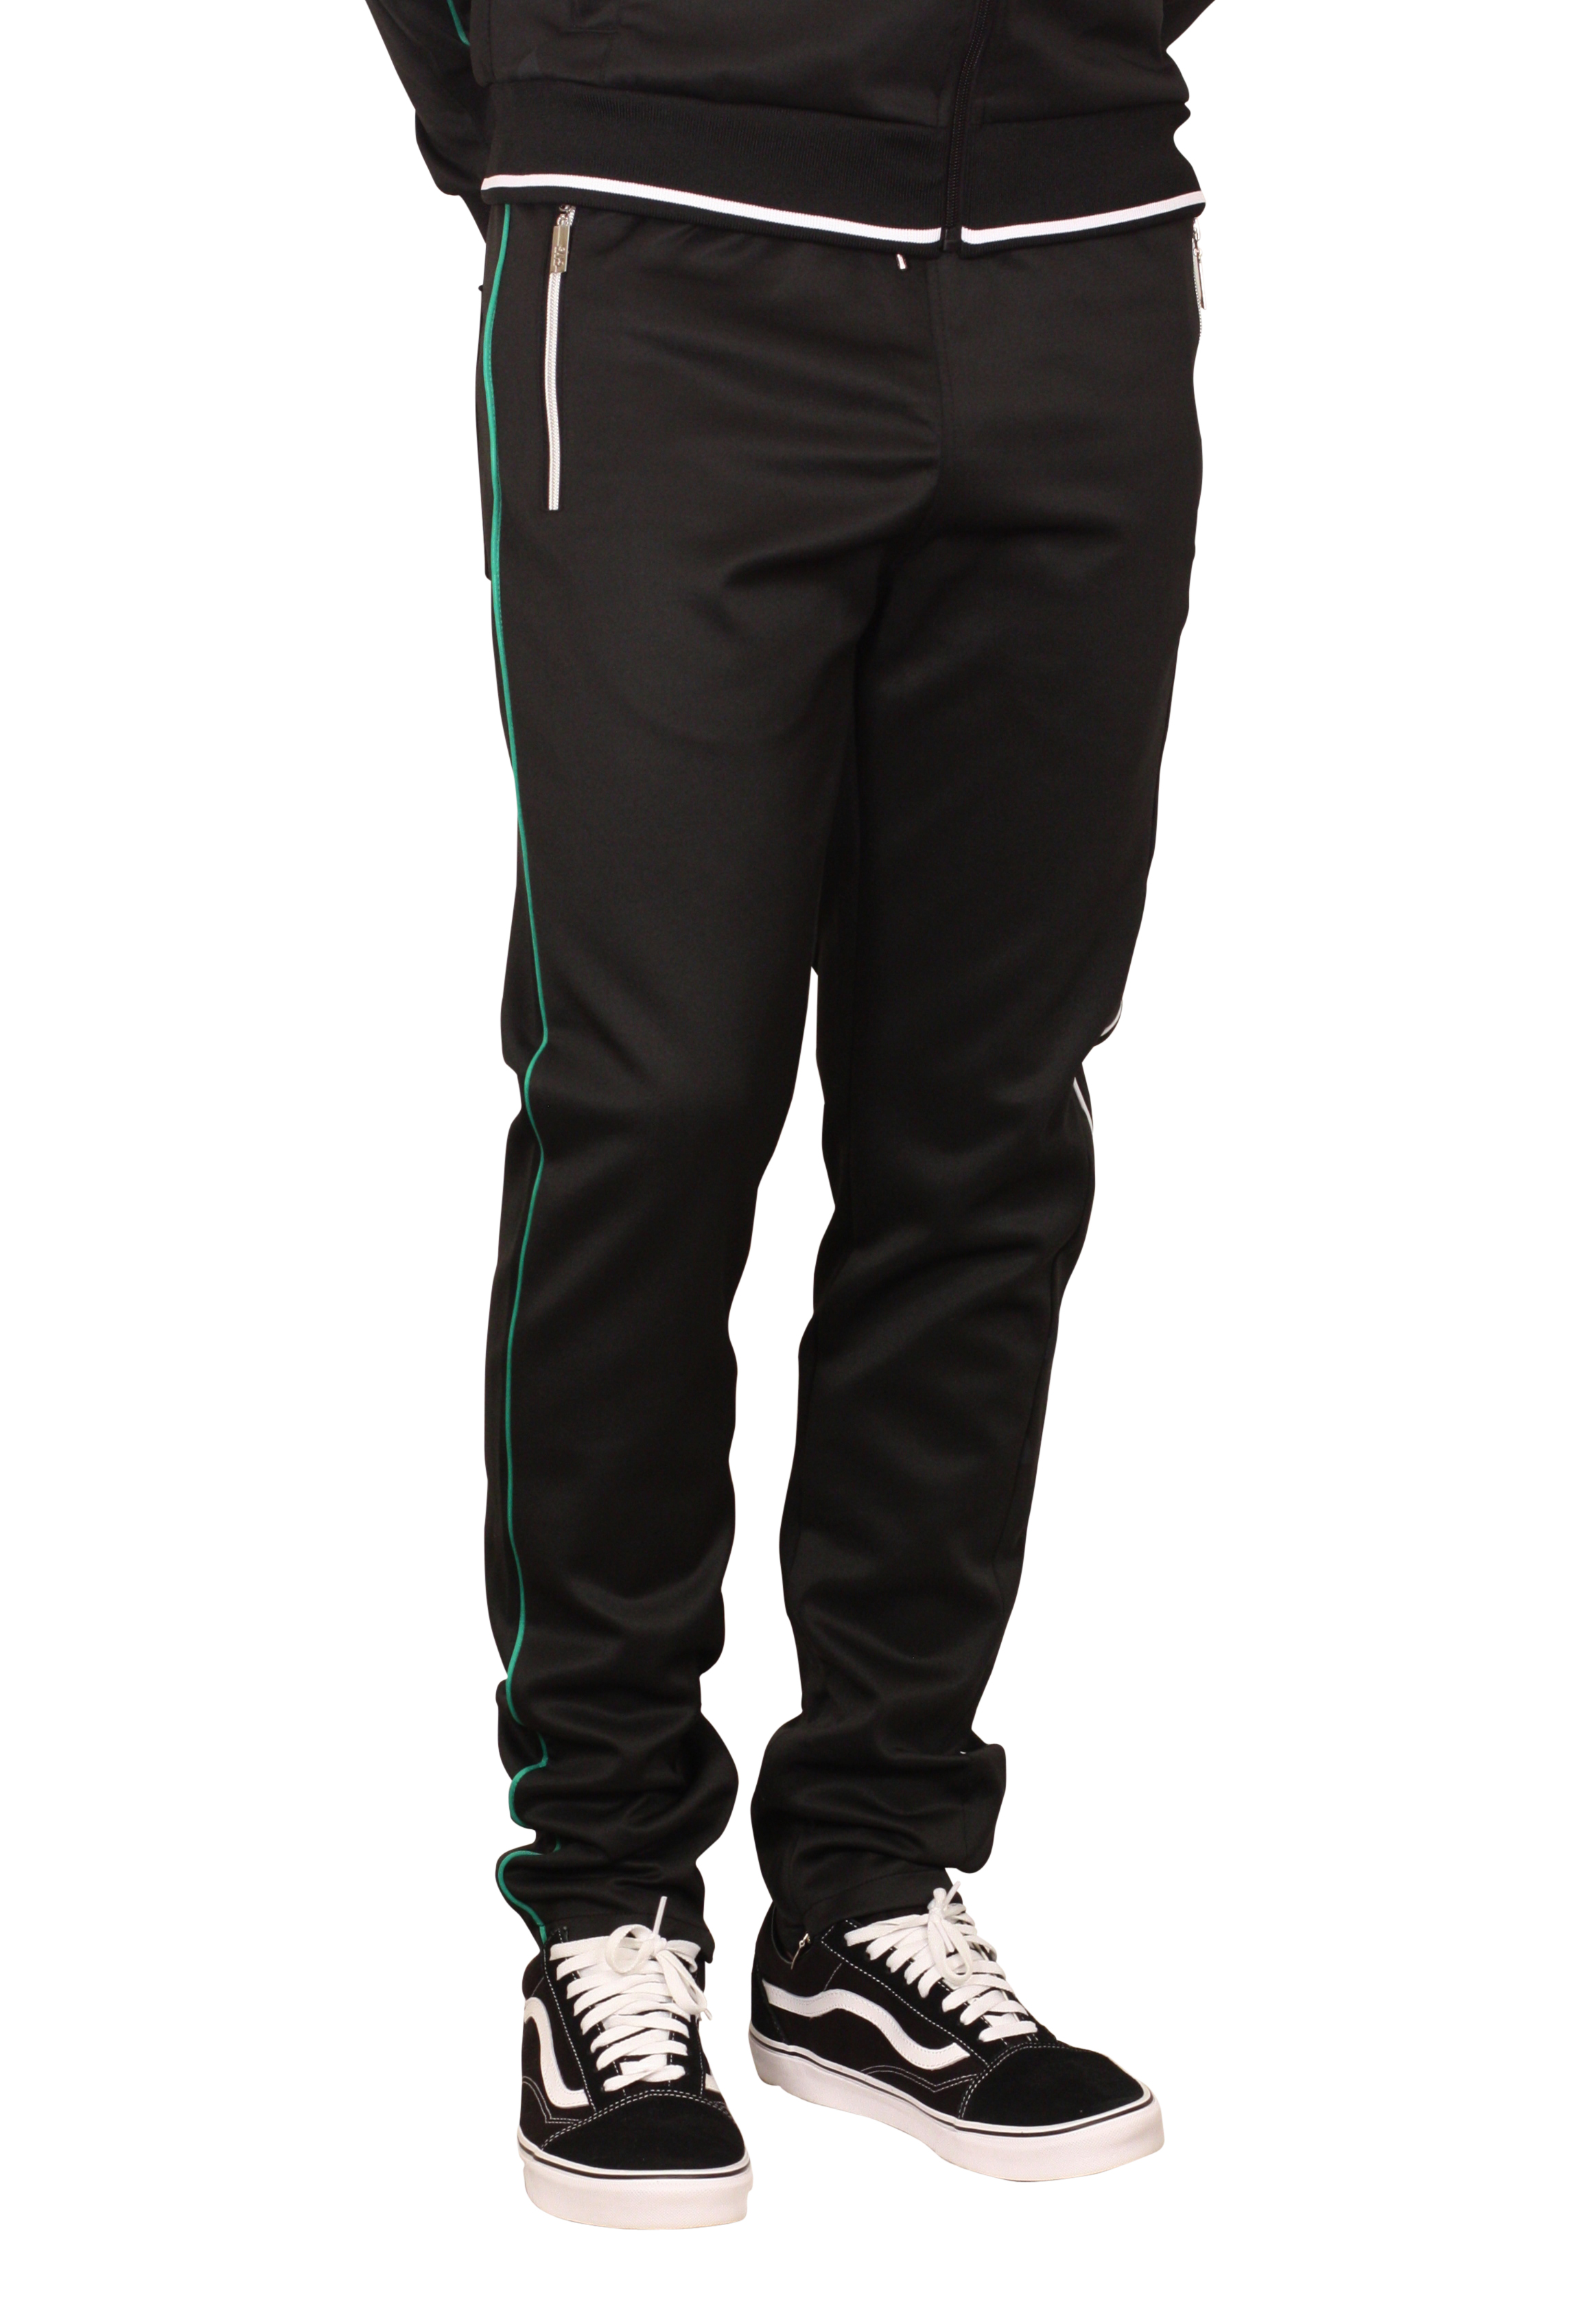 BKYS Lucky Charm Track Pants